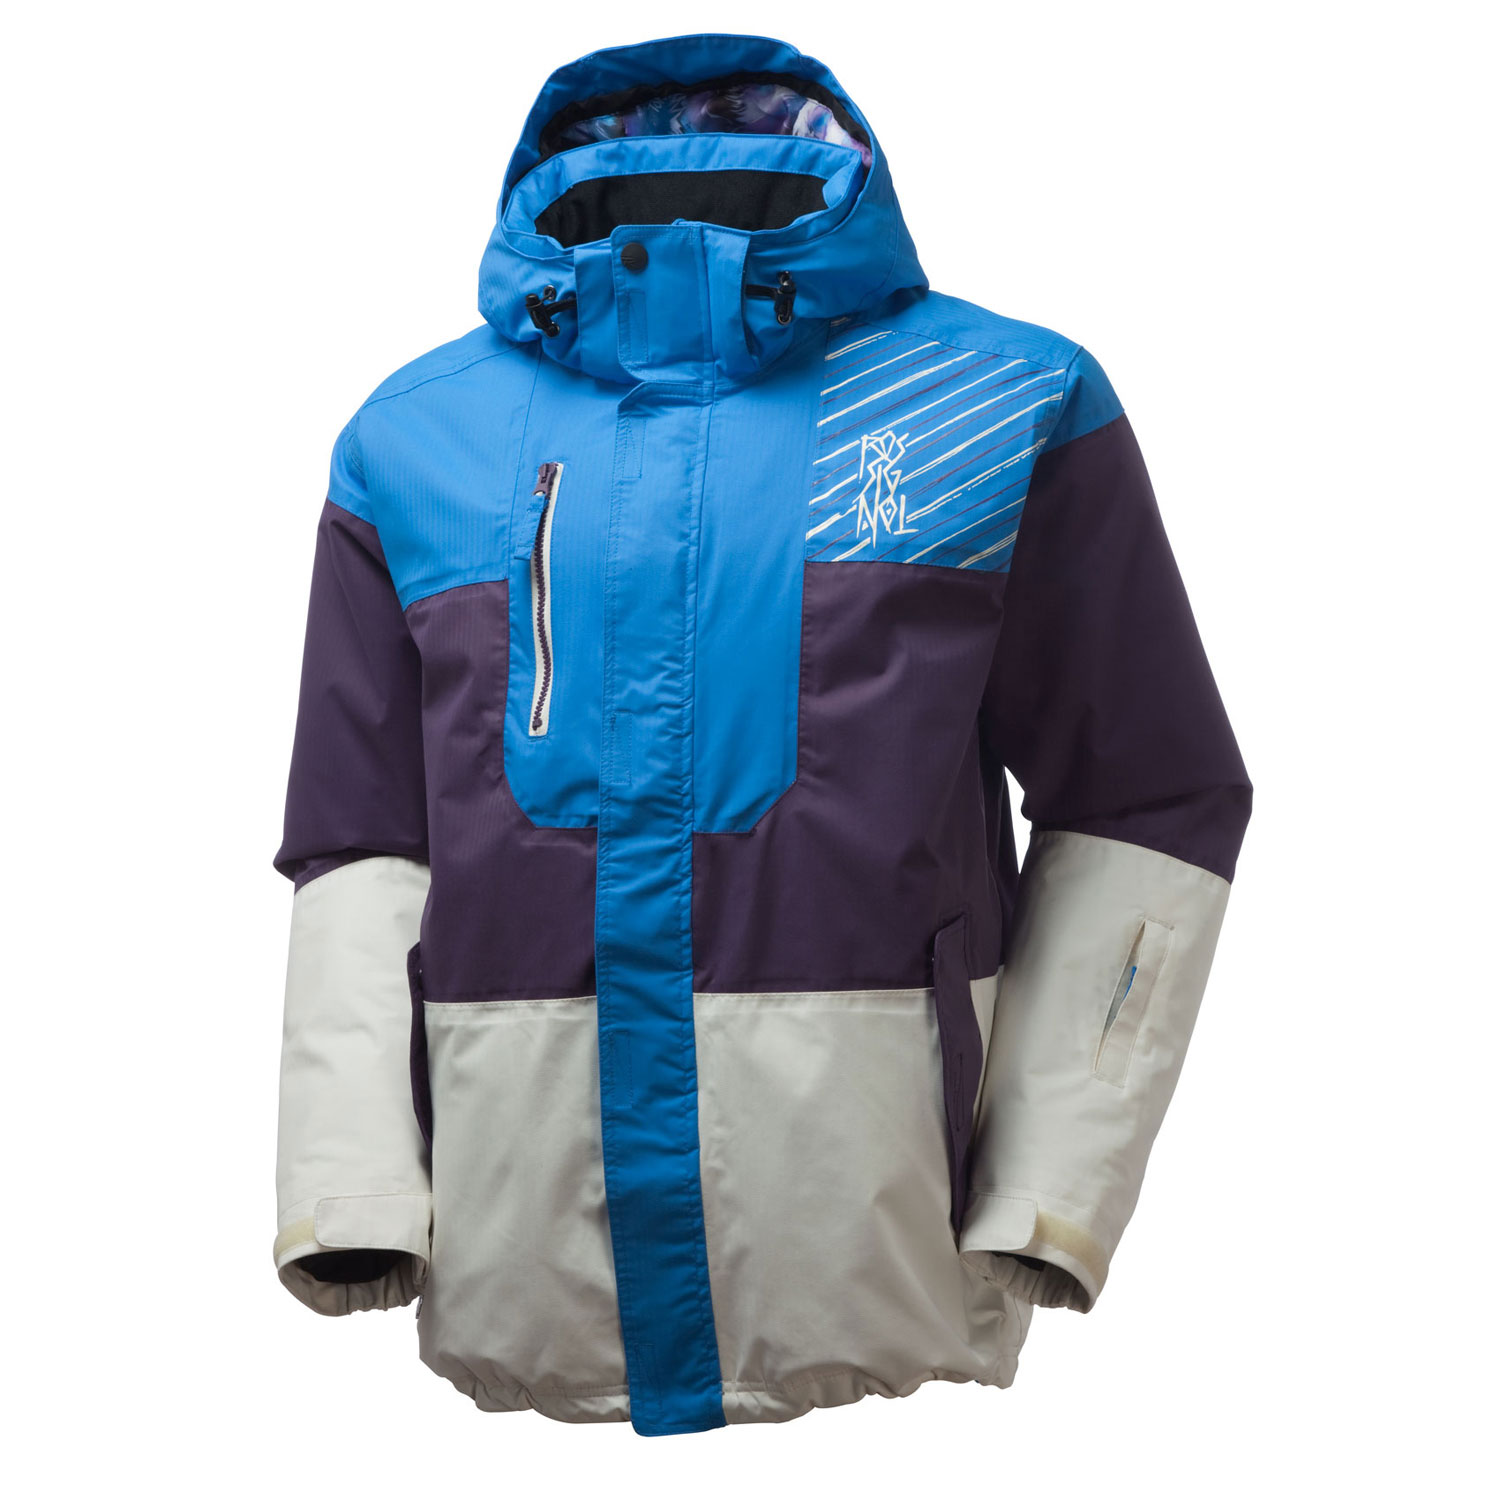 Ski The Angry Jacket from Rossignol will leave you with nothing to be angry about. In fact, you will be warm and comfortable in this stylish and practical jacket ideal for snowboarders, skiers and even kids who just love being outdoors in the winter. The jacket is waterproofed with a polyester shell and includes insulation in both the body and sleeves of the coat to make sure you are dry and warm. A removable hood, Rossignol's Aligaiter system (to attach jacket to pants) make this jacket ideal for a day on the mountain or a snowball fight in the yard.Key Features of the Rossignol Angry Ski Jacket: 5,000mm Waterproof 5,000g Breathability Herringbone Content: 100% Polyester Finish: Breathable coating Lining: Body 80g/Sleeves 60g - $153.95